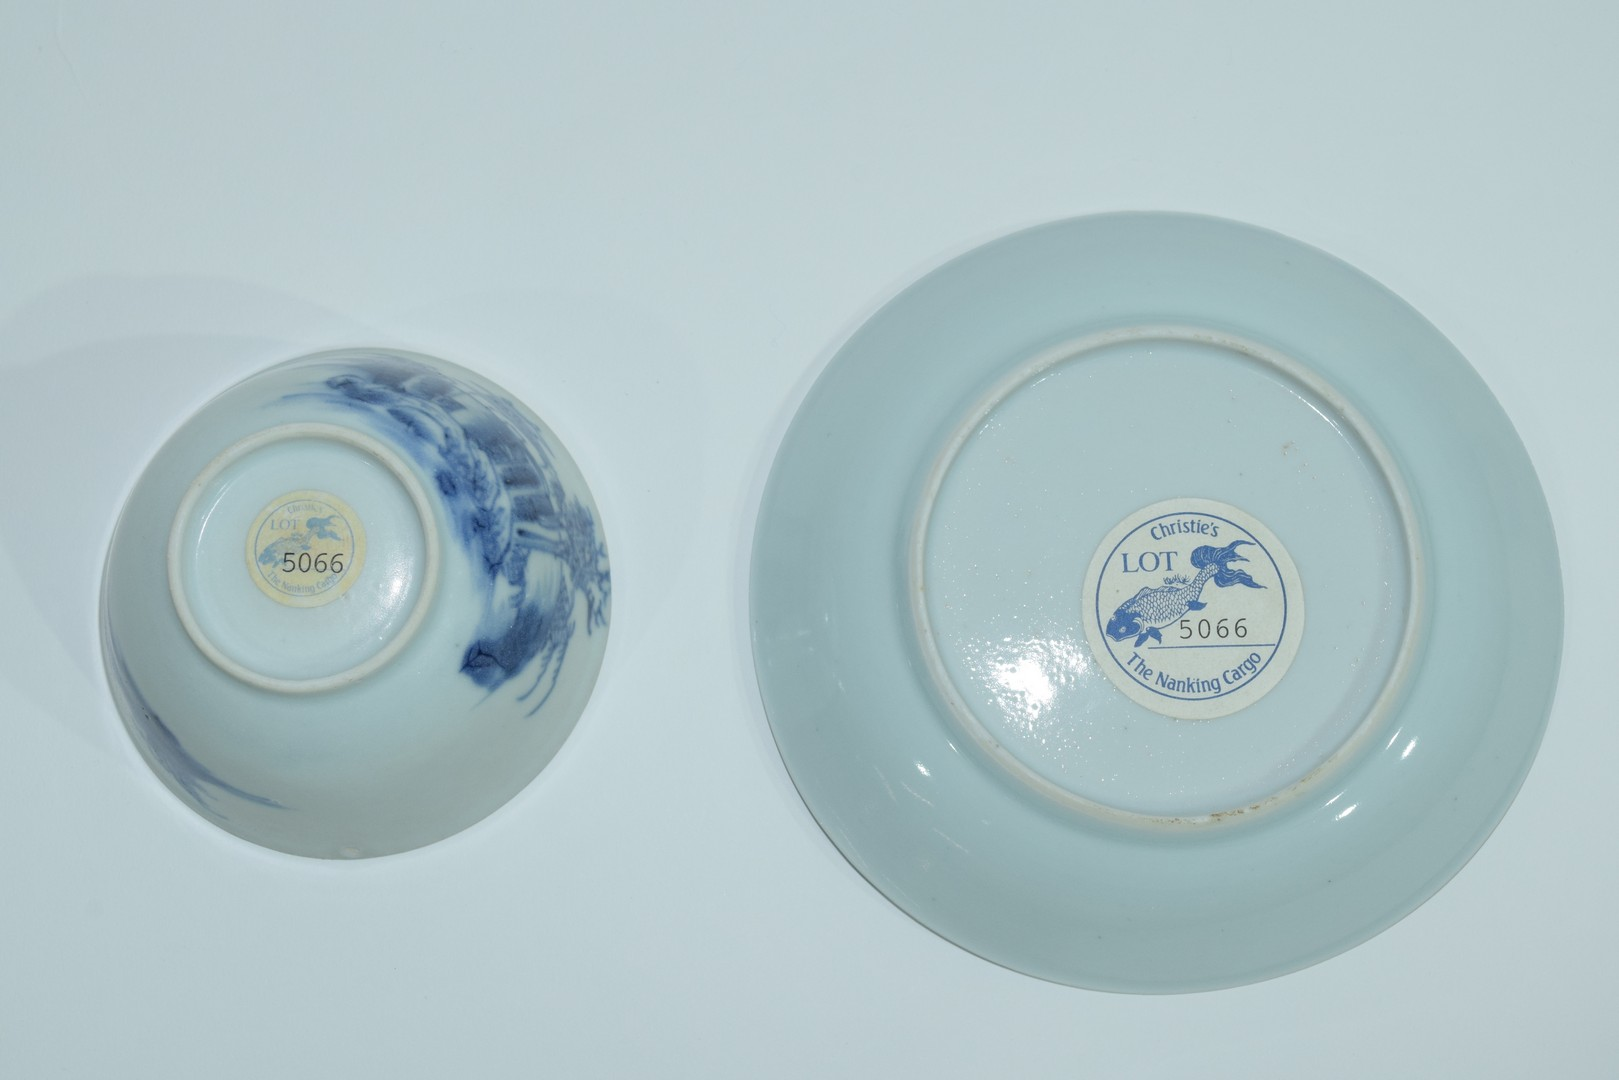 18th century Chinese porcelain Nanking Cargo tea bowl and saucer - Image 11 of 15